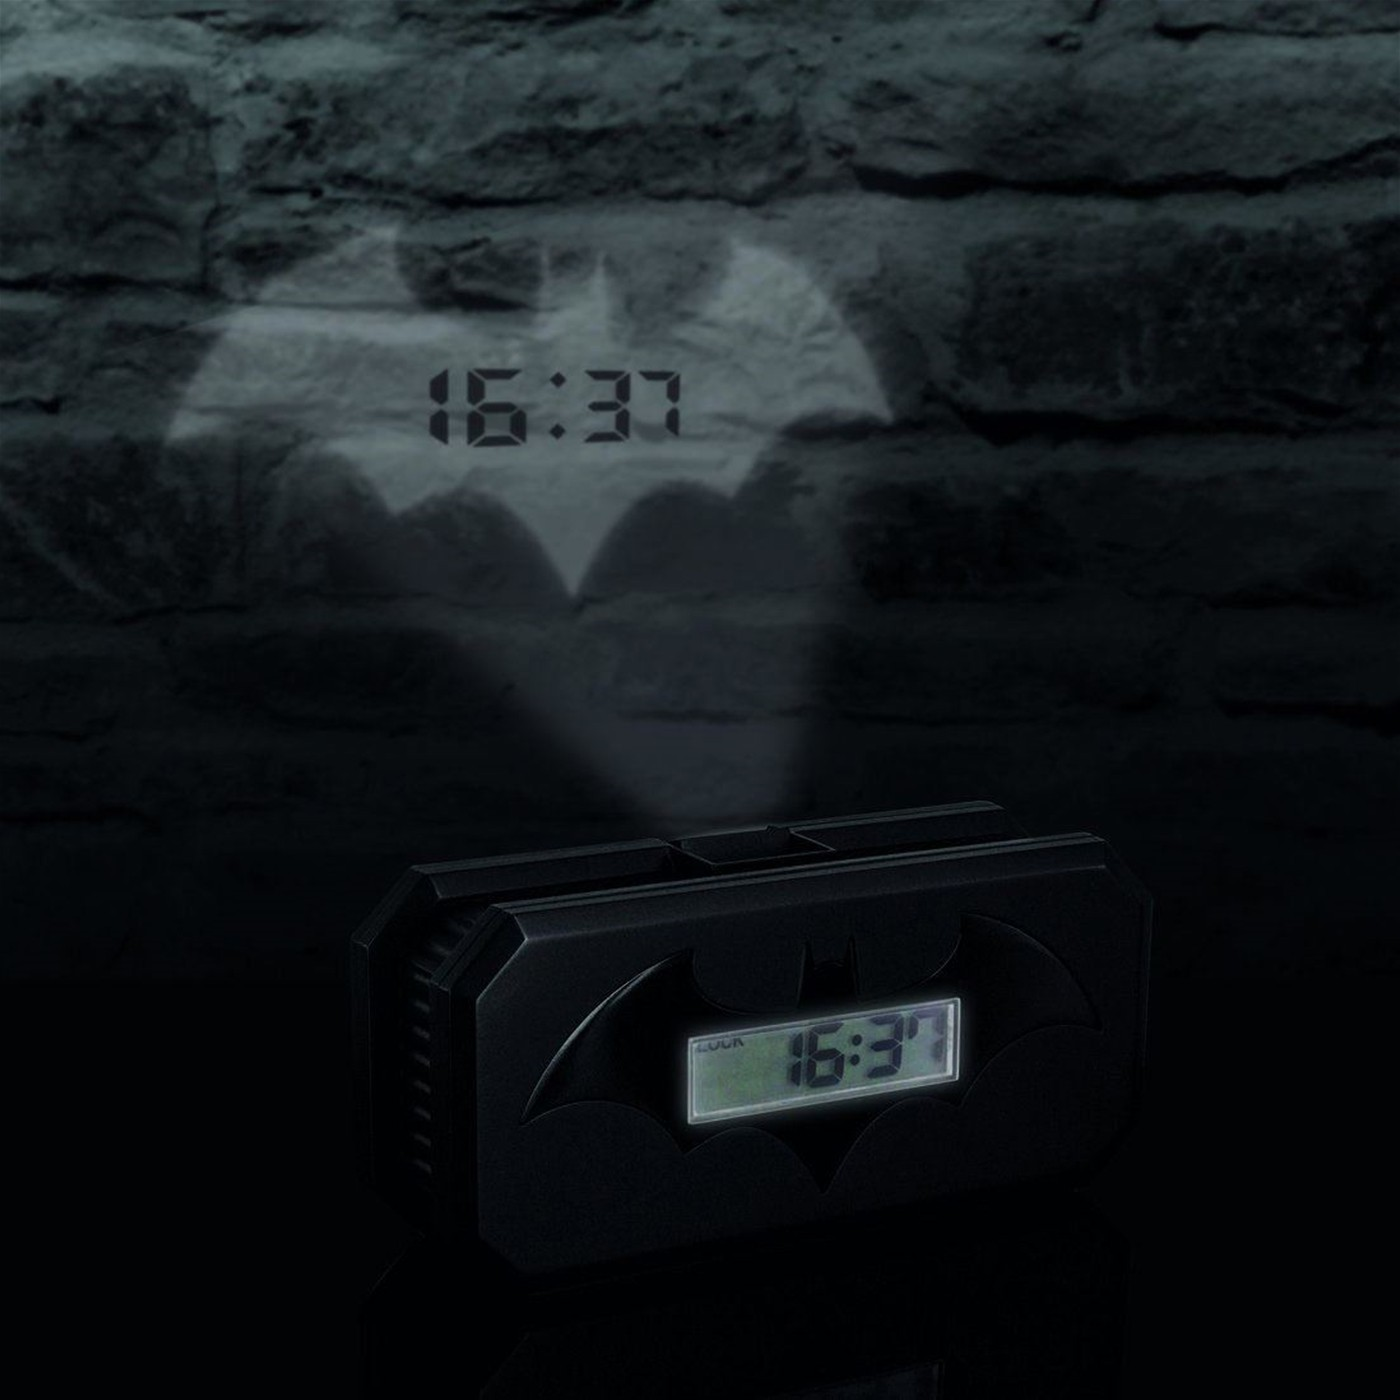 Batman Projection Alarm Clock V2